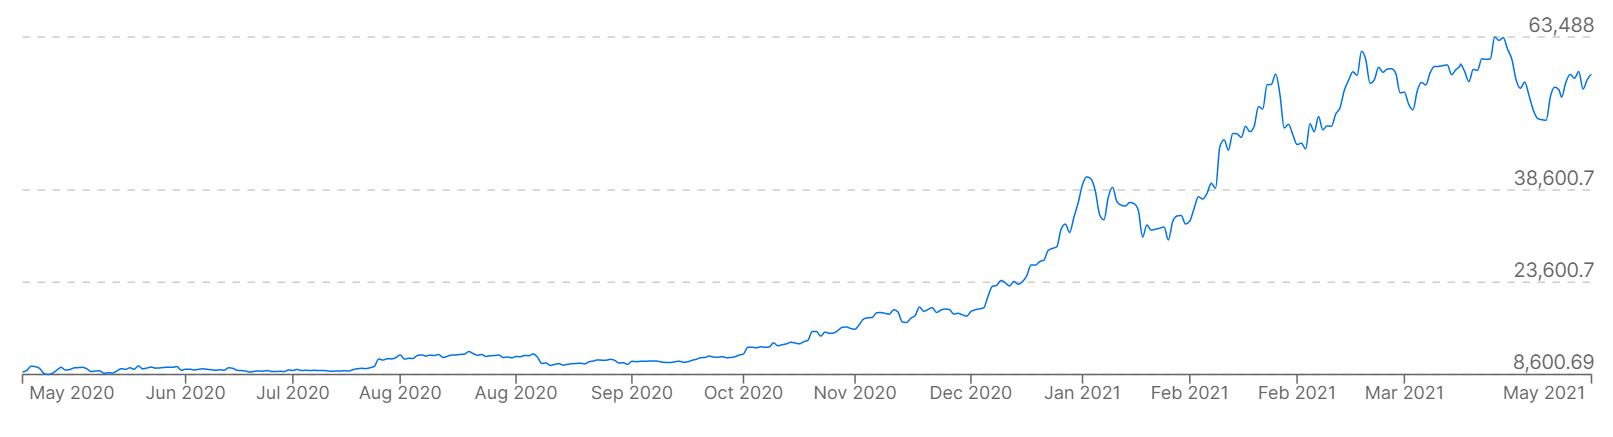 Cryptocurency Price Prediction in 2022